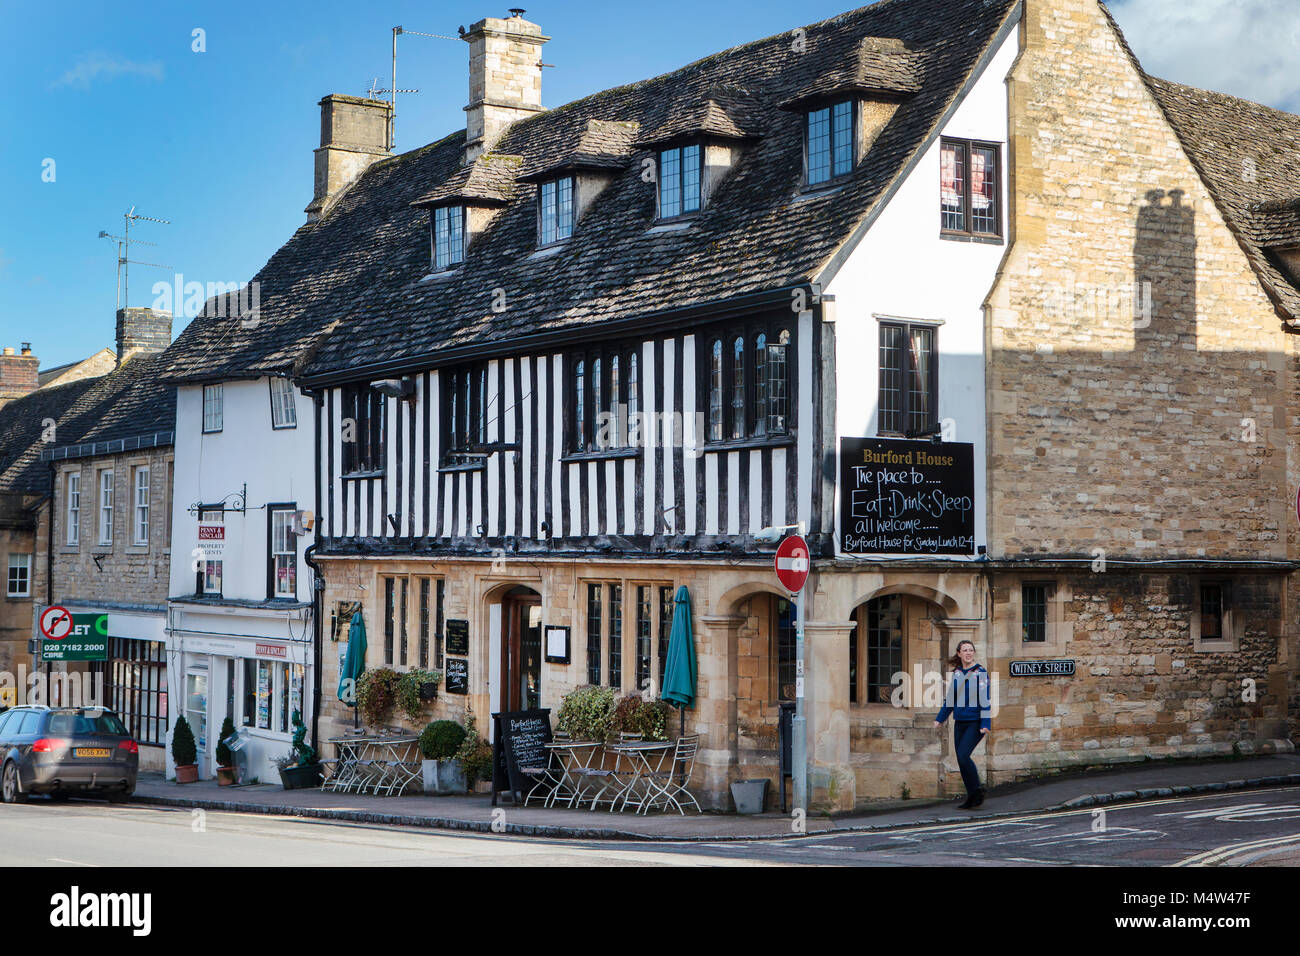 BURFORD, UK - FEBRUARY 15th, 2018: Burford is a medieval town on the River Windrush in the Cotswold hills in West - Stock Image